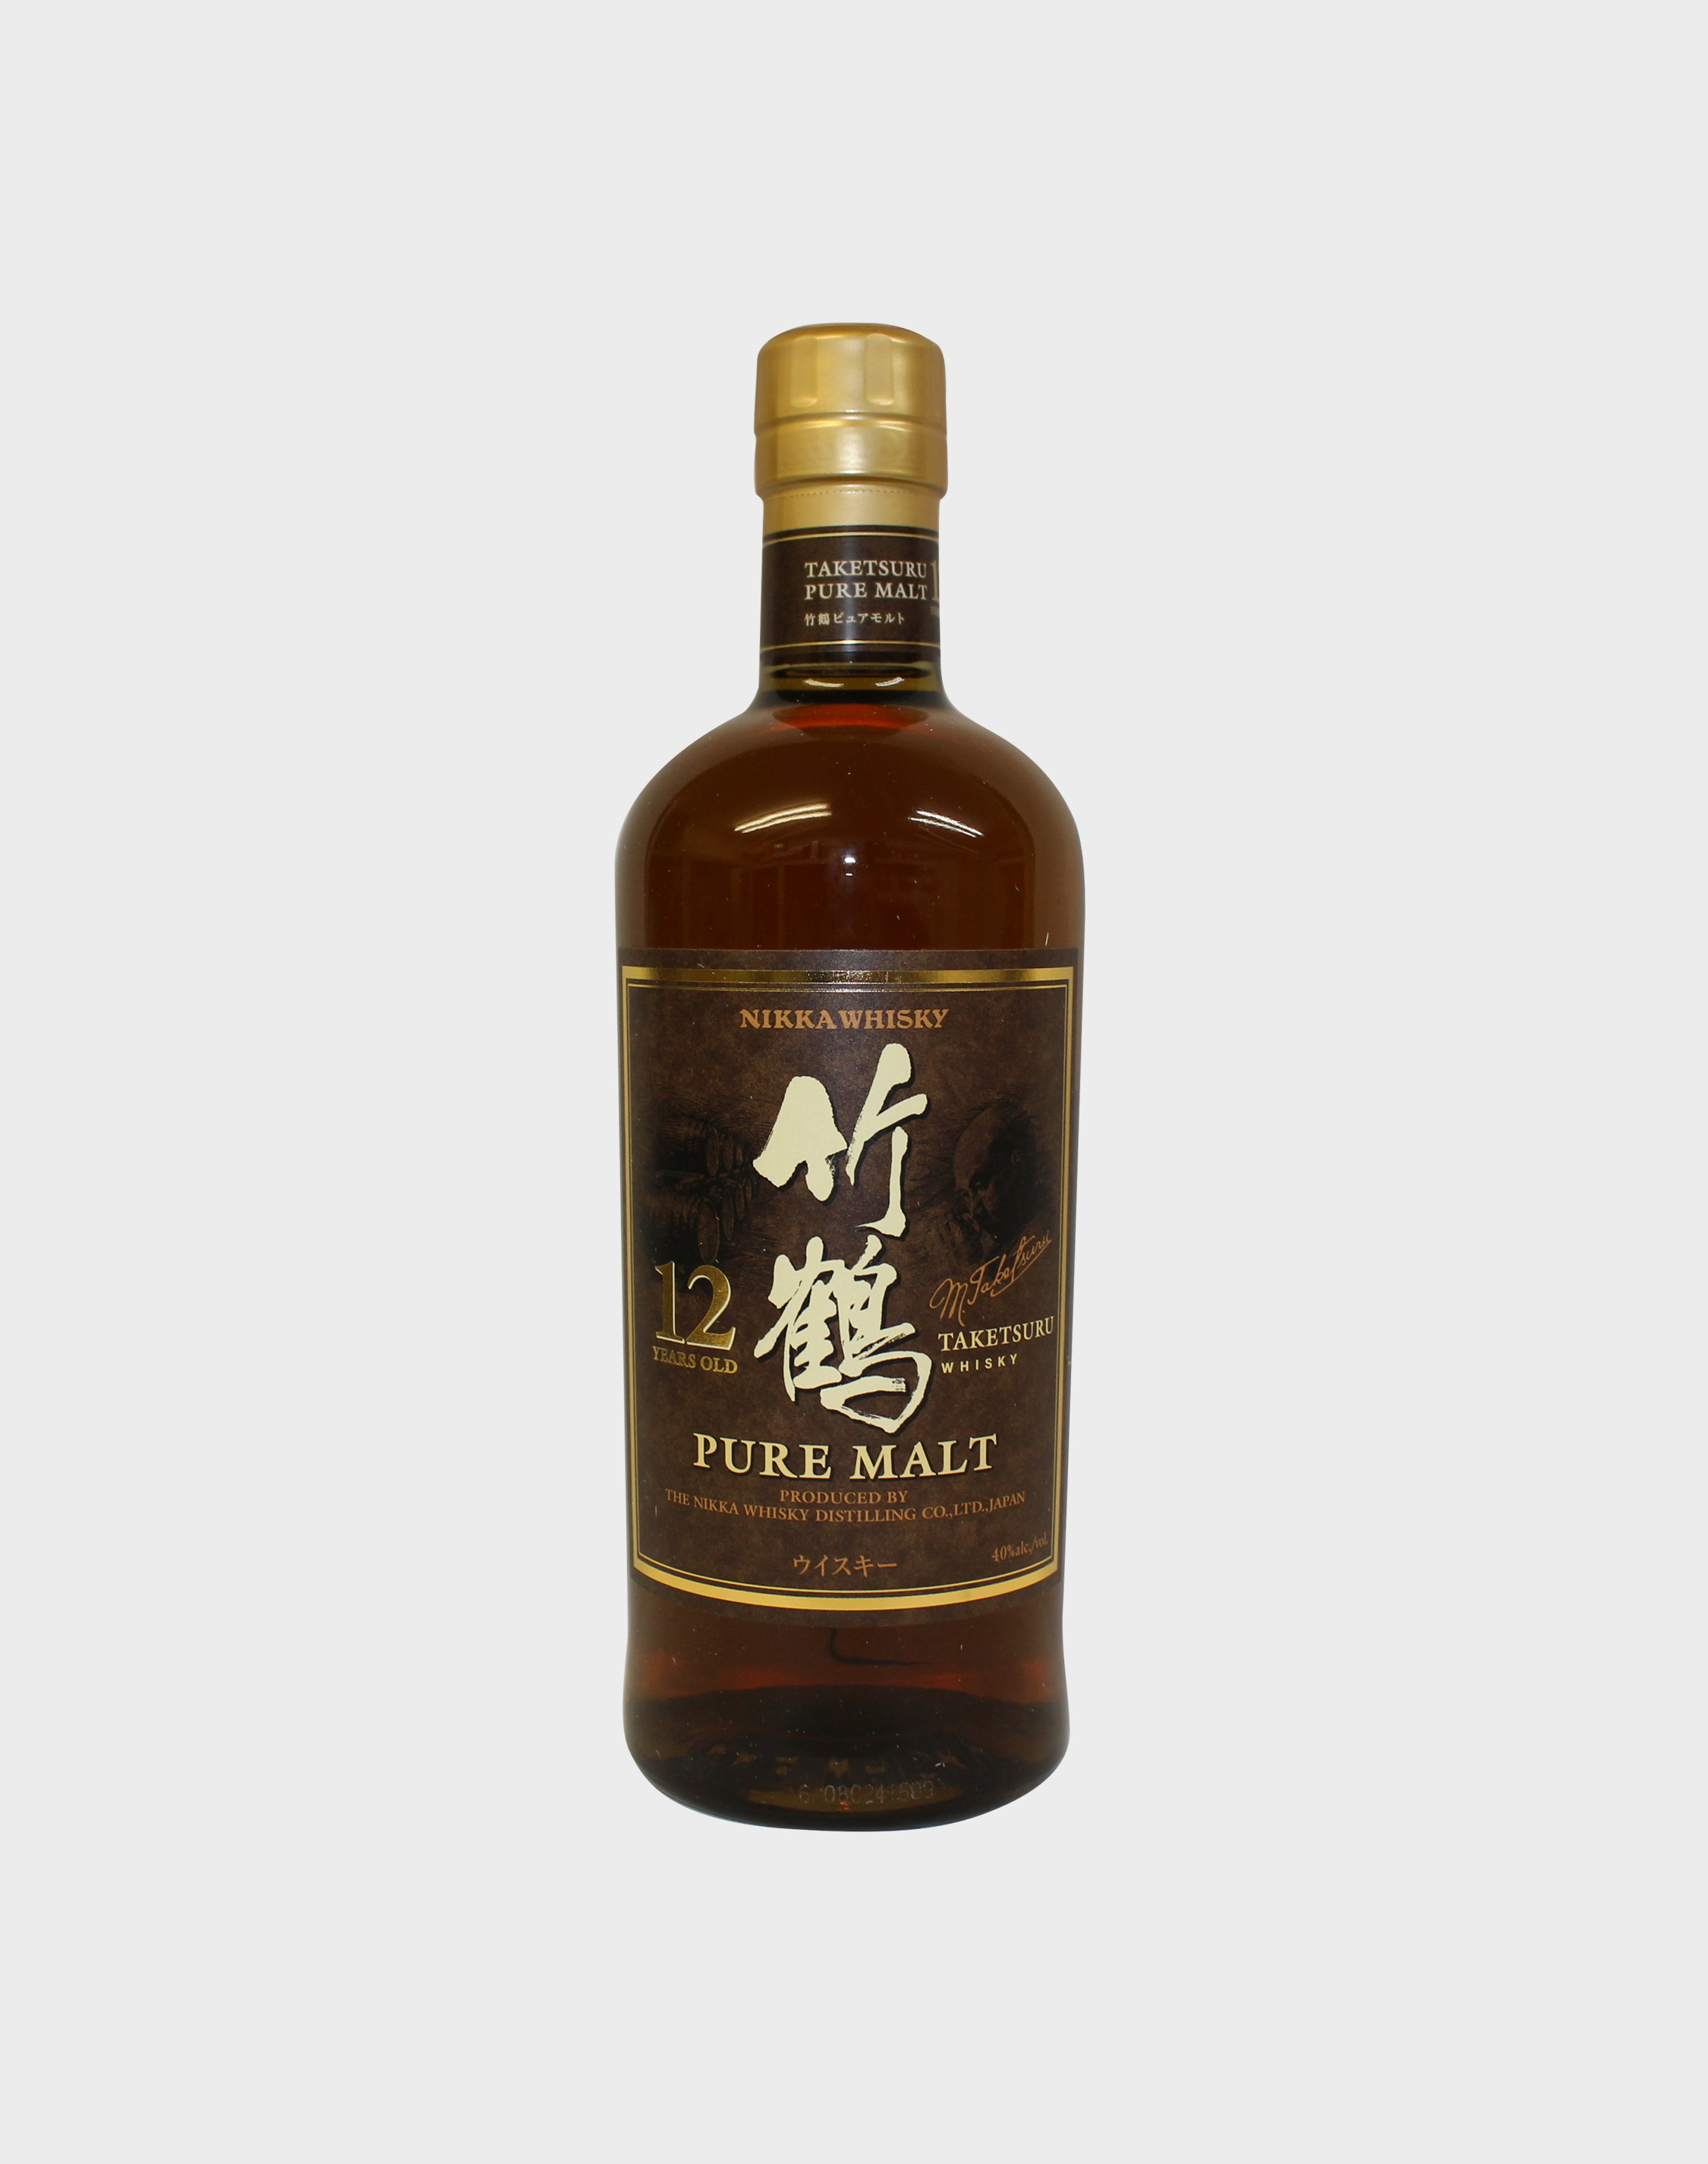 Nikka Taketsuru Pure Malt 12 year Old Whisky